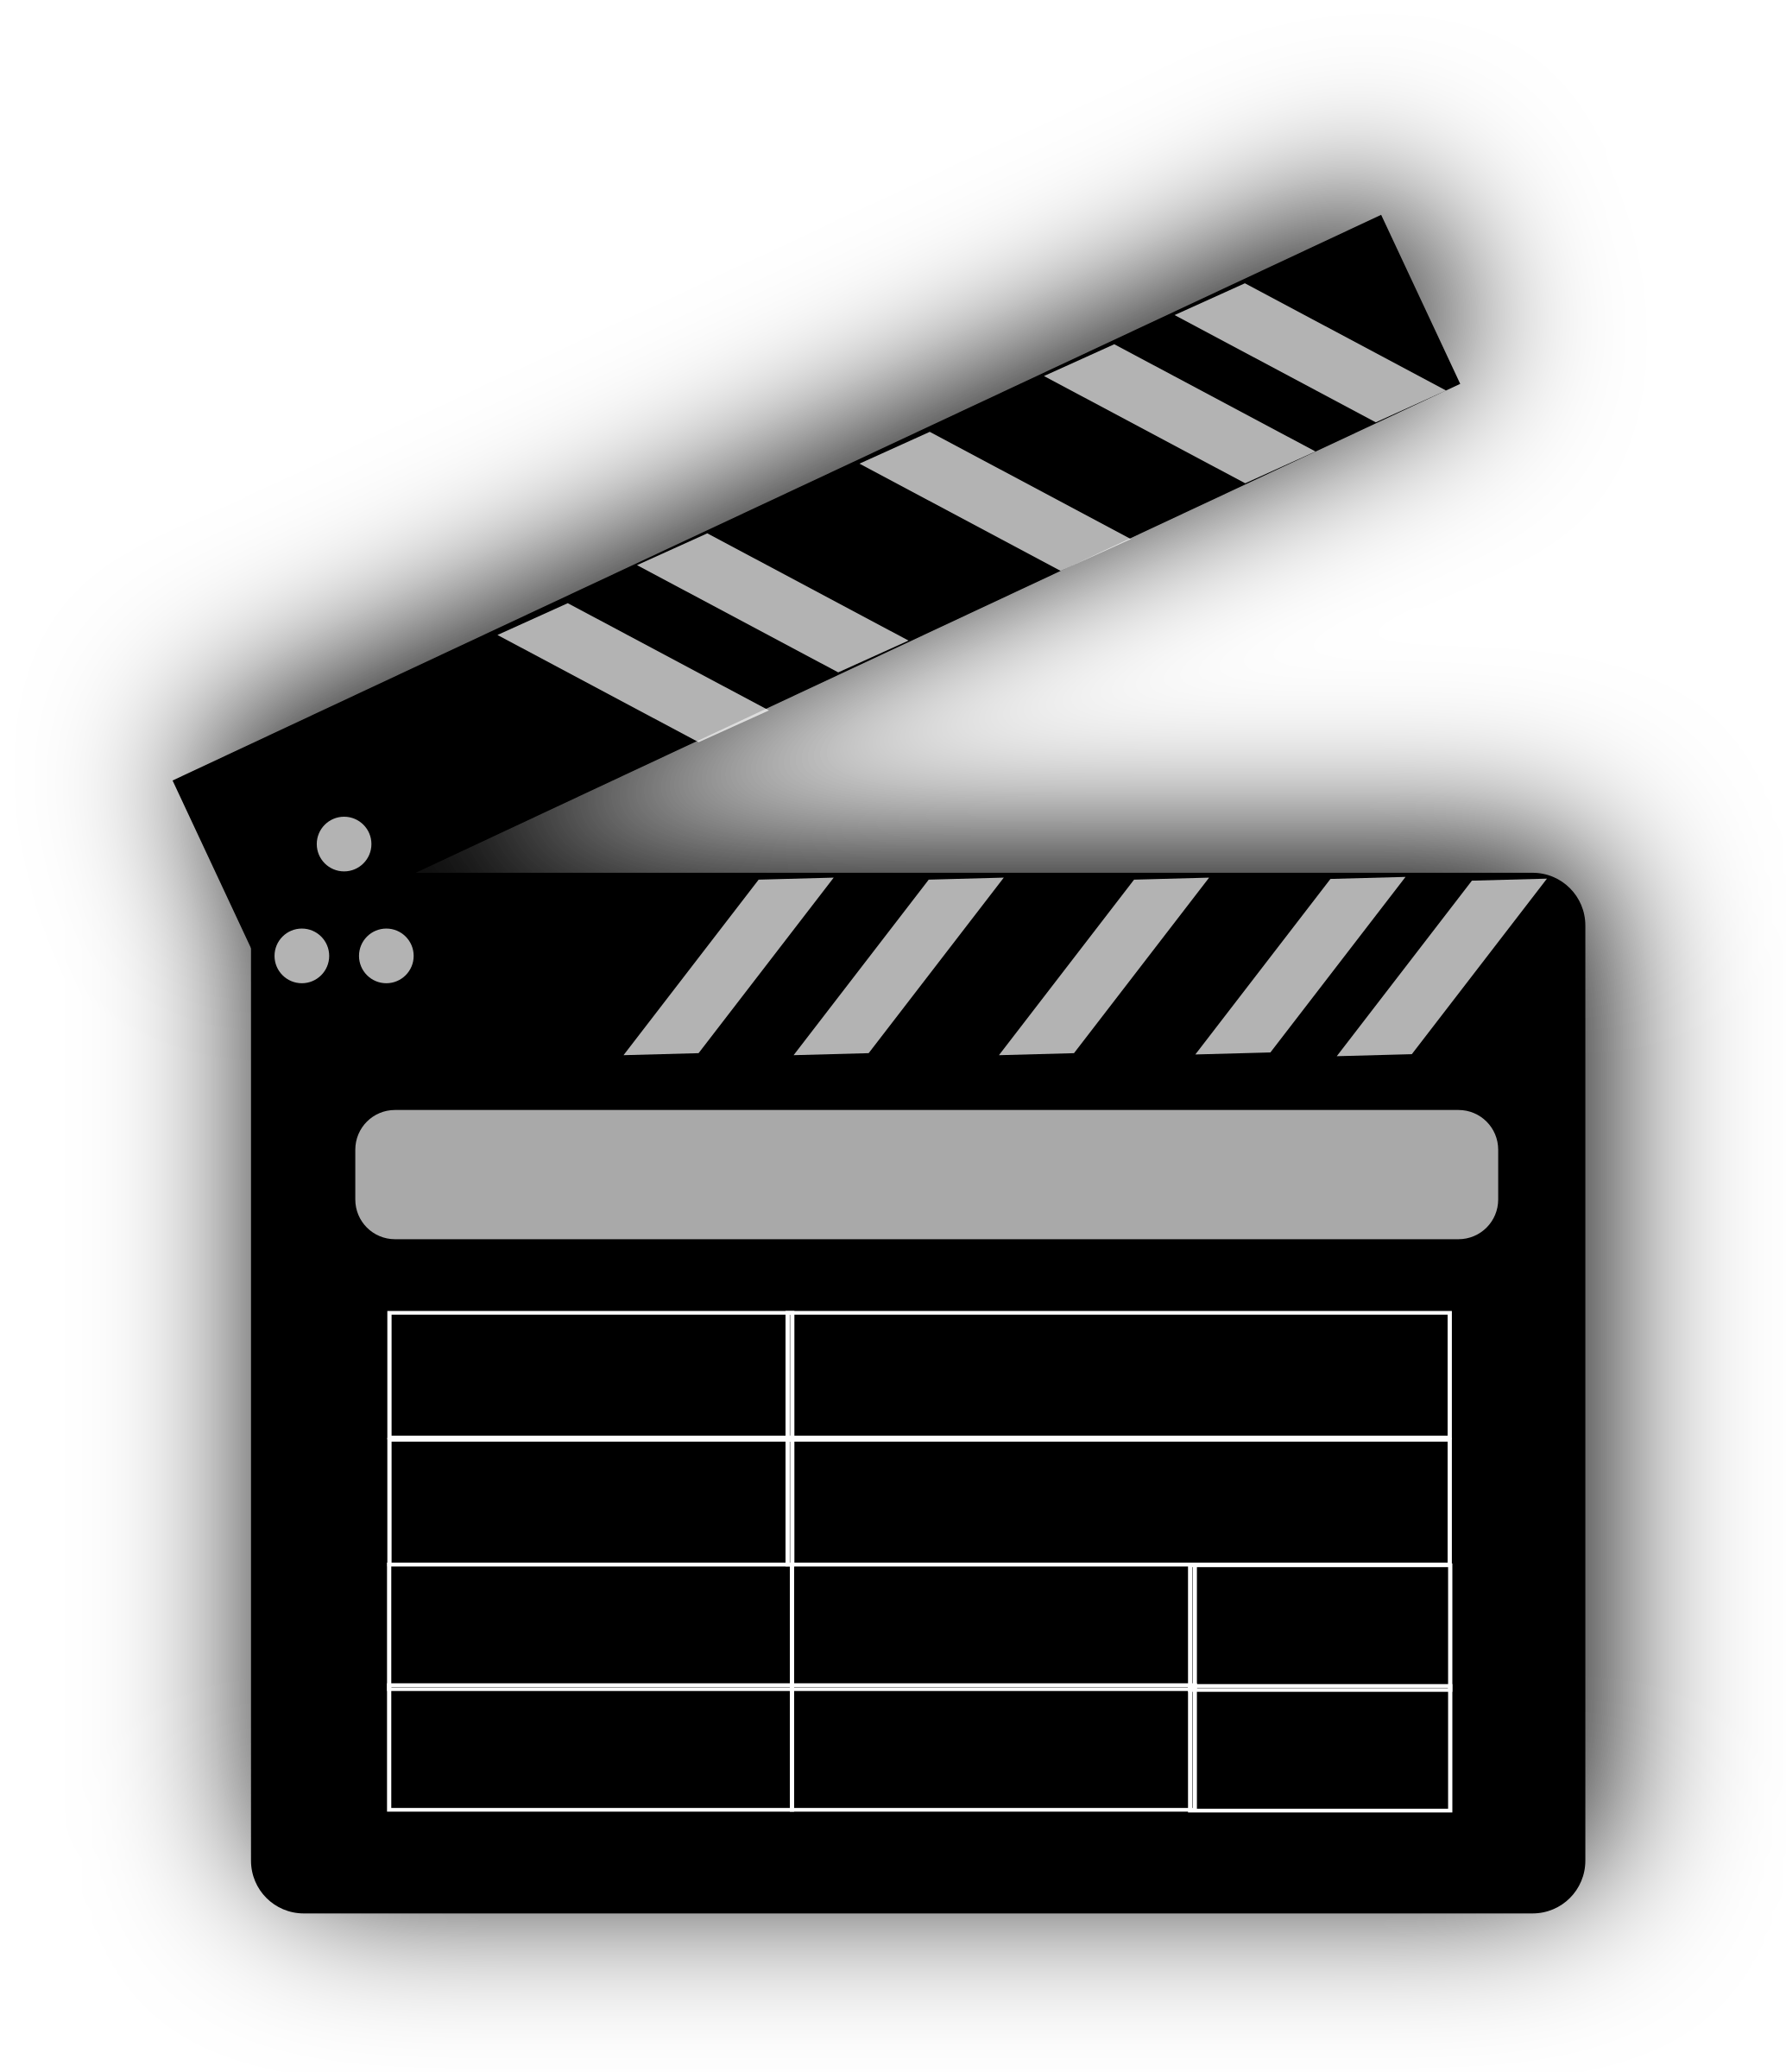 Movie clapper board icons. Monday clipart transparent